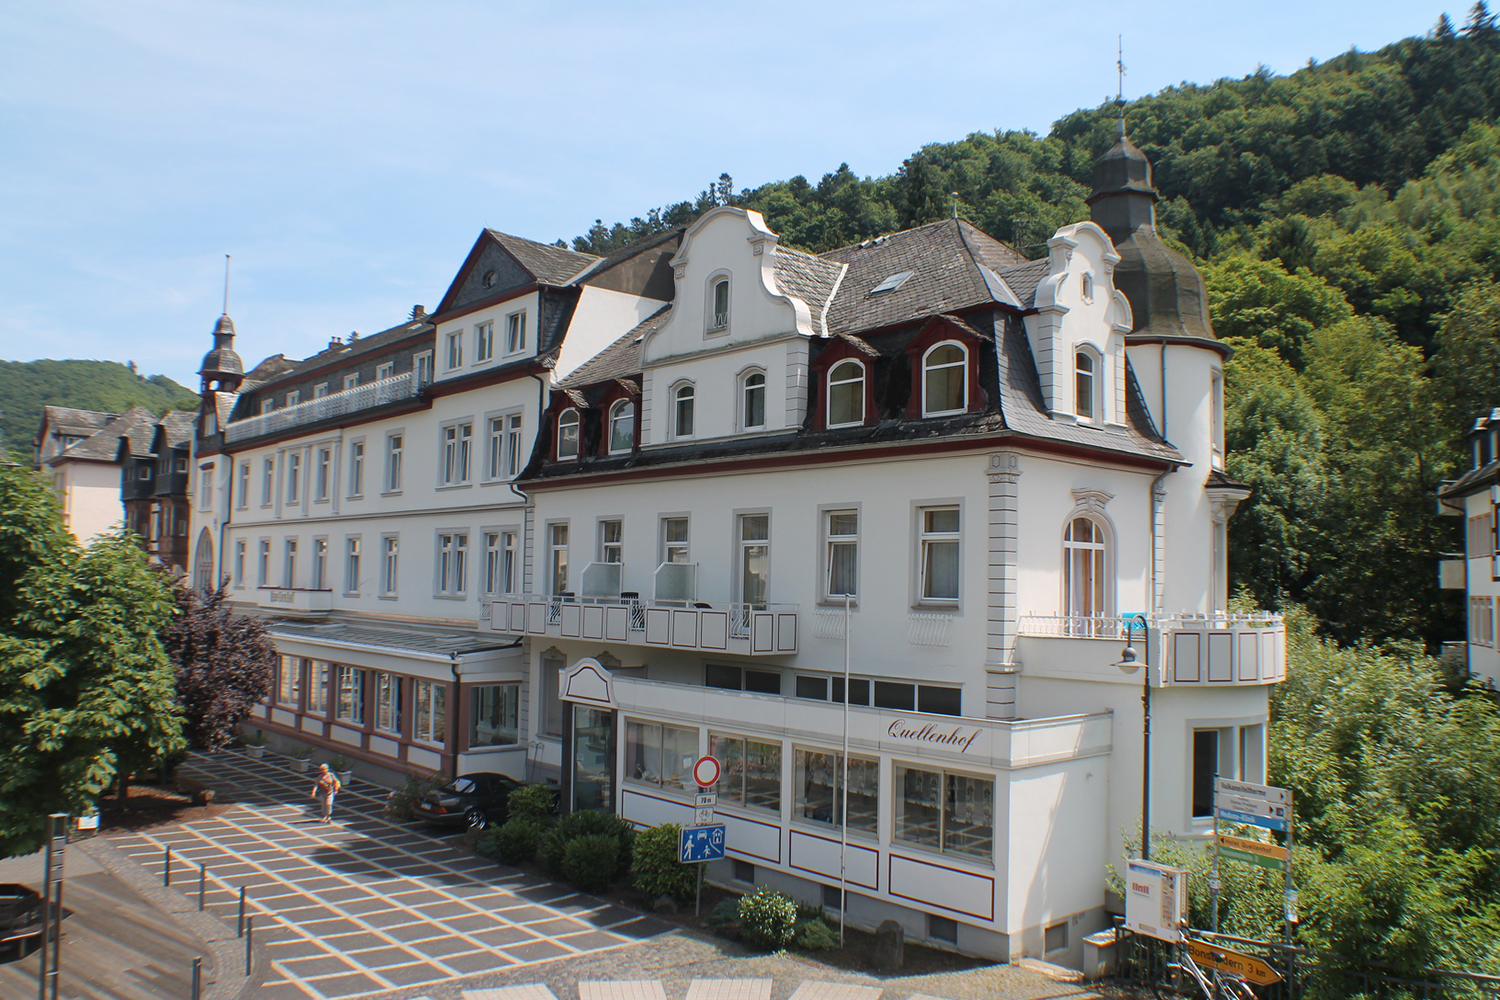 6 Tage Wellness an der Mosel im Kurhotel Quellenhof in Bad Bertrich